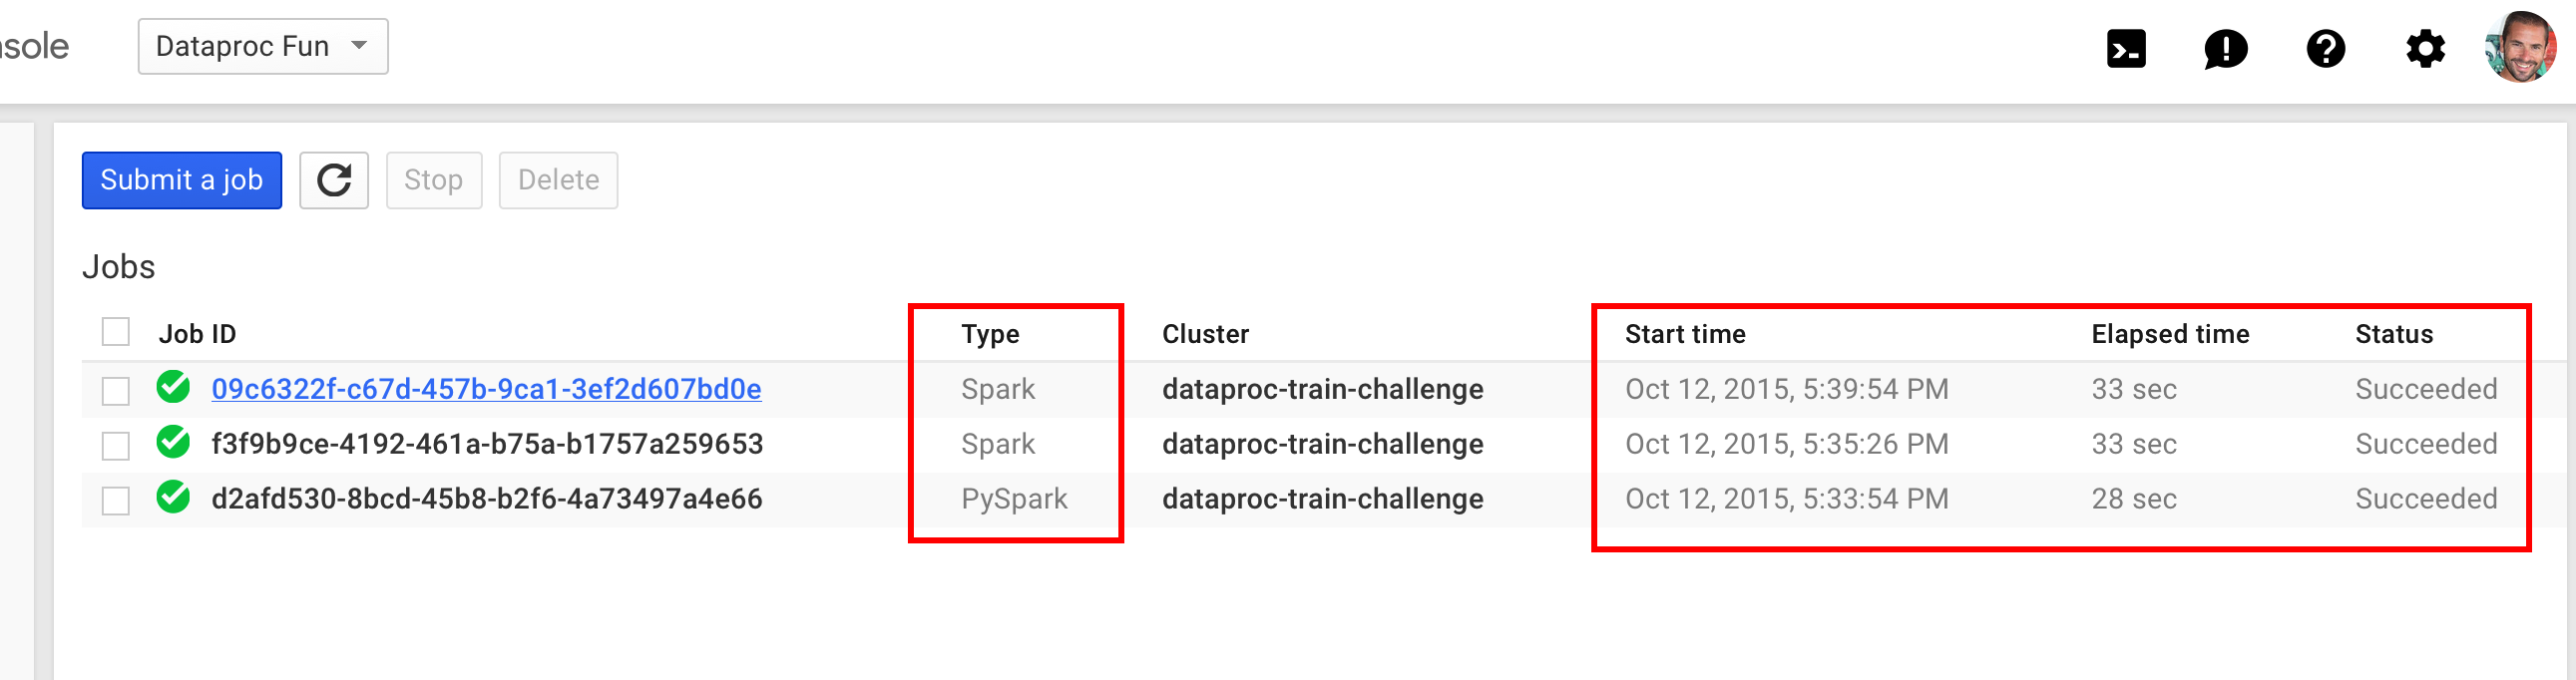 Google Cloud Dataproc and the 17 minute train challenge – Shine